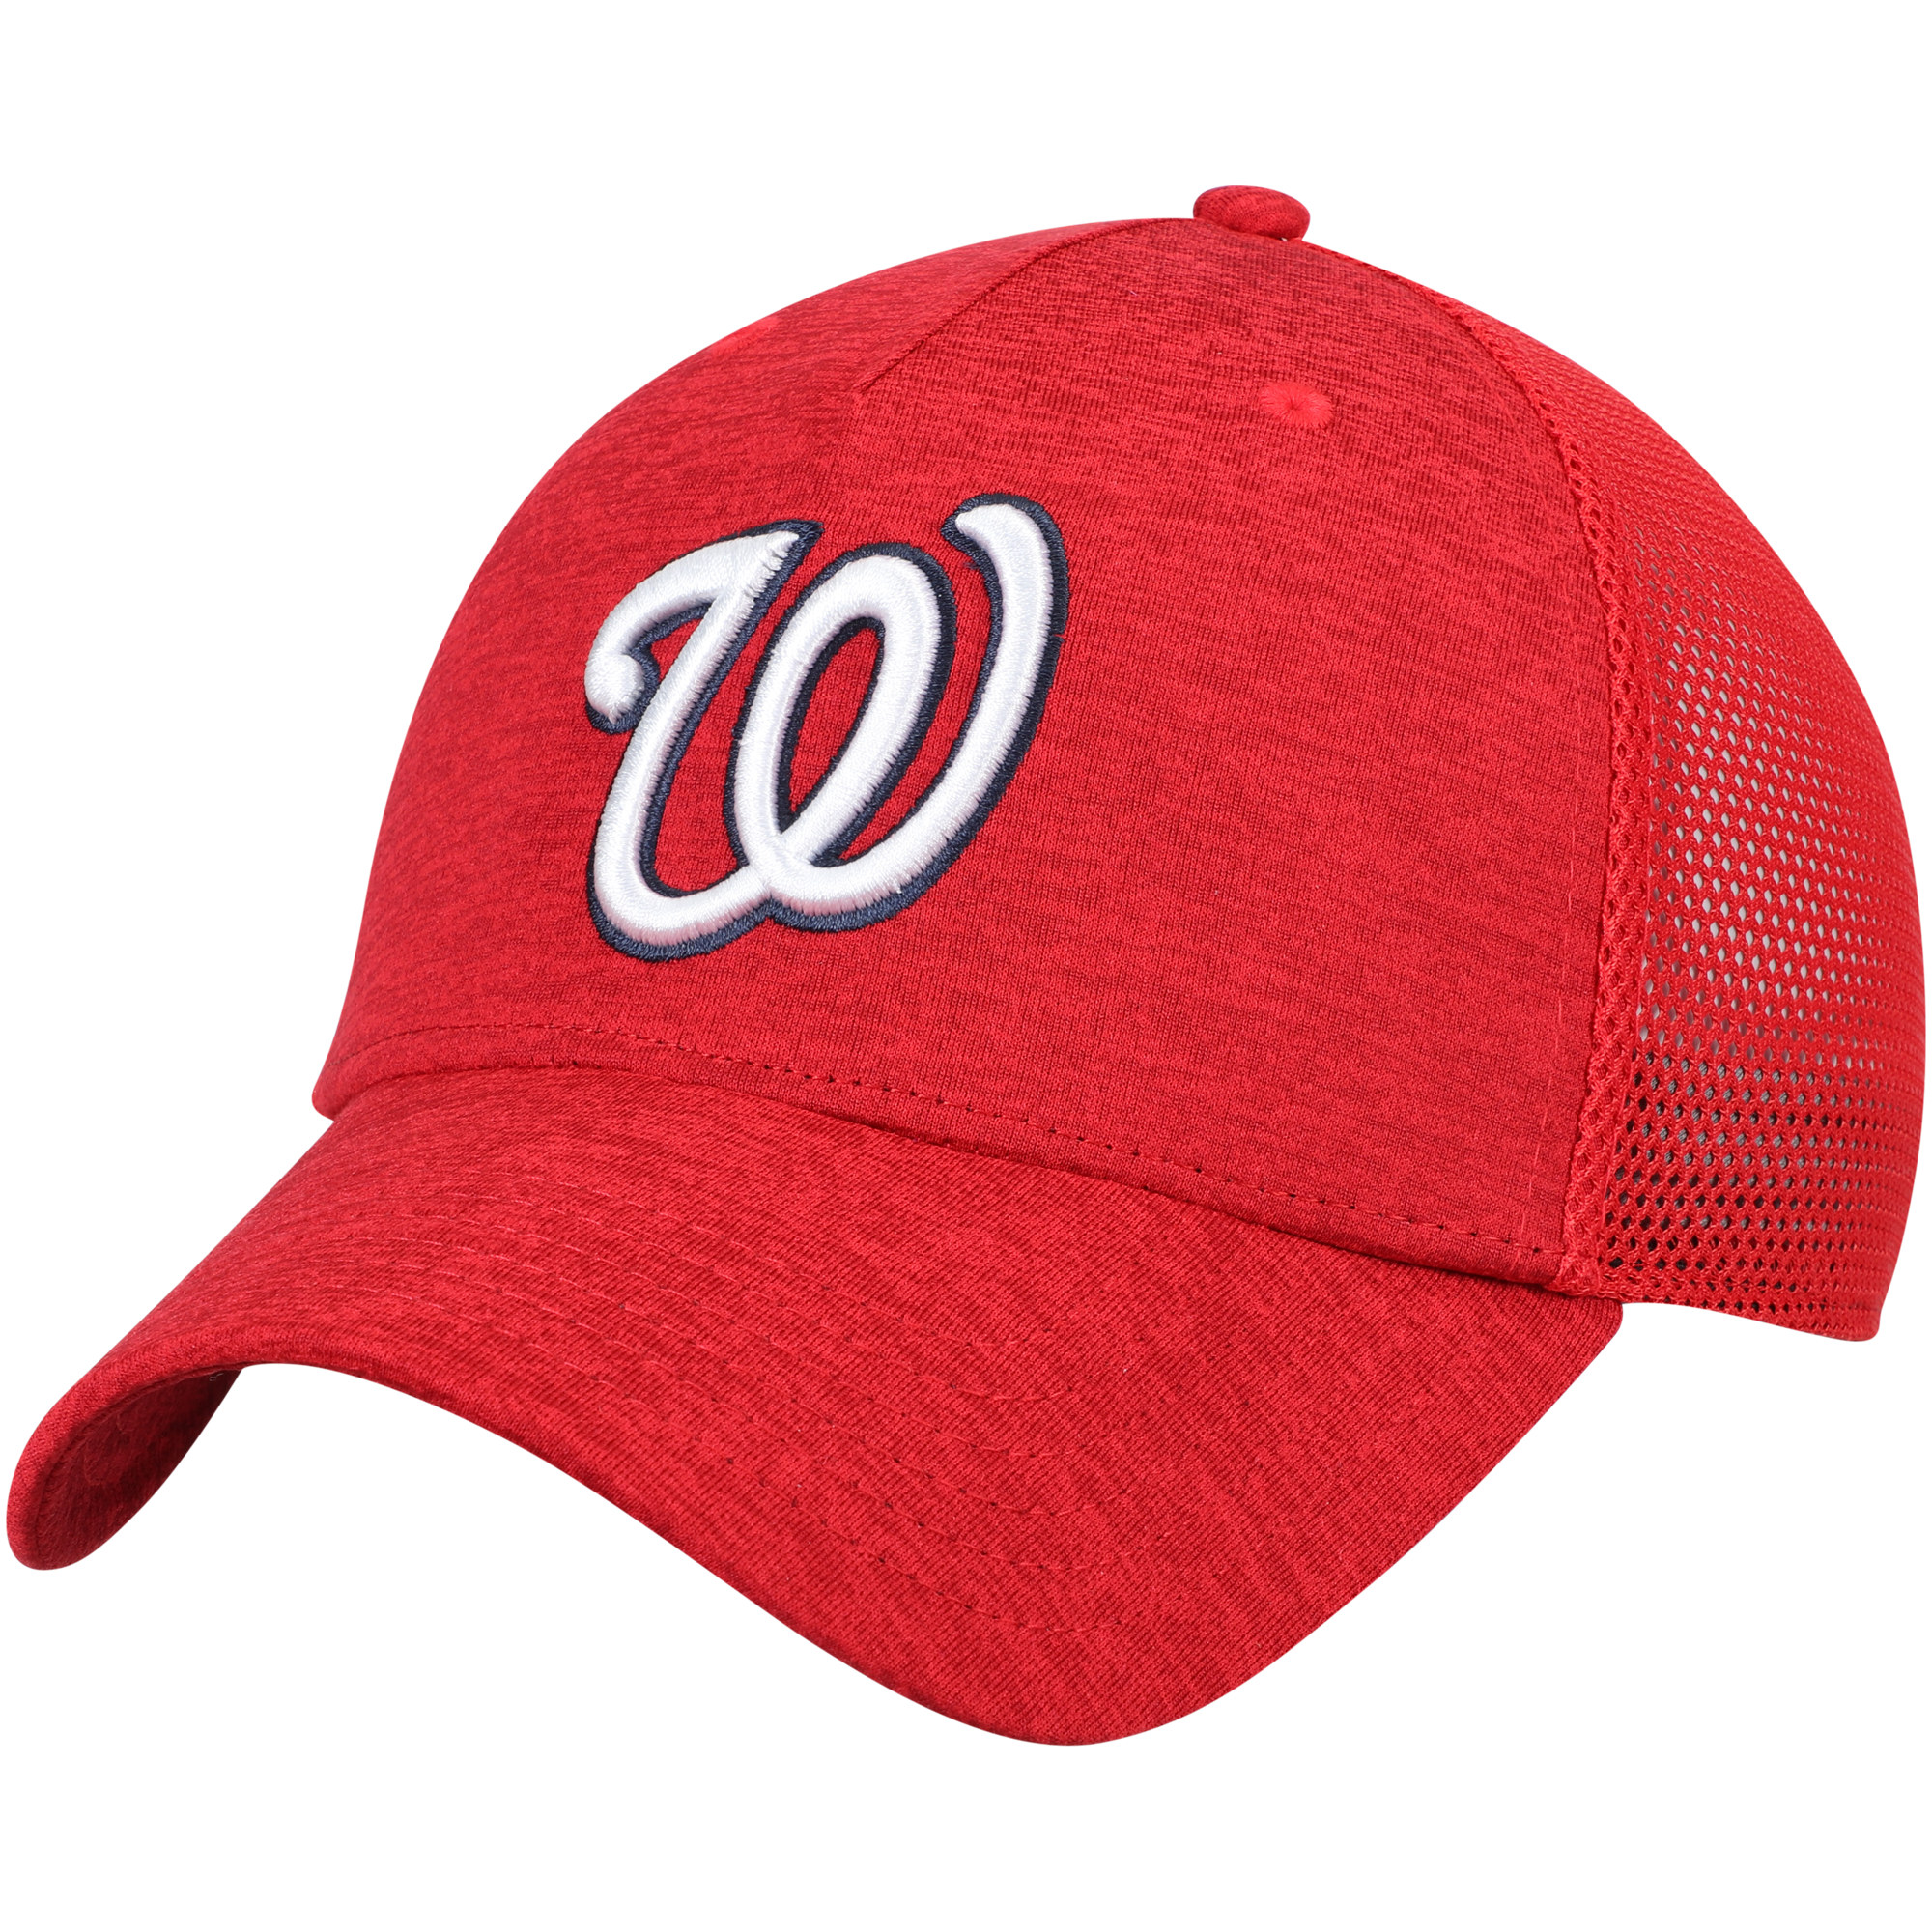 Washington Nationals Under Armour Twist Closer Trucker Performance Adjustable Hat - Red - OSFA